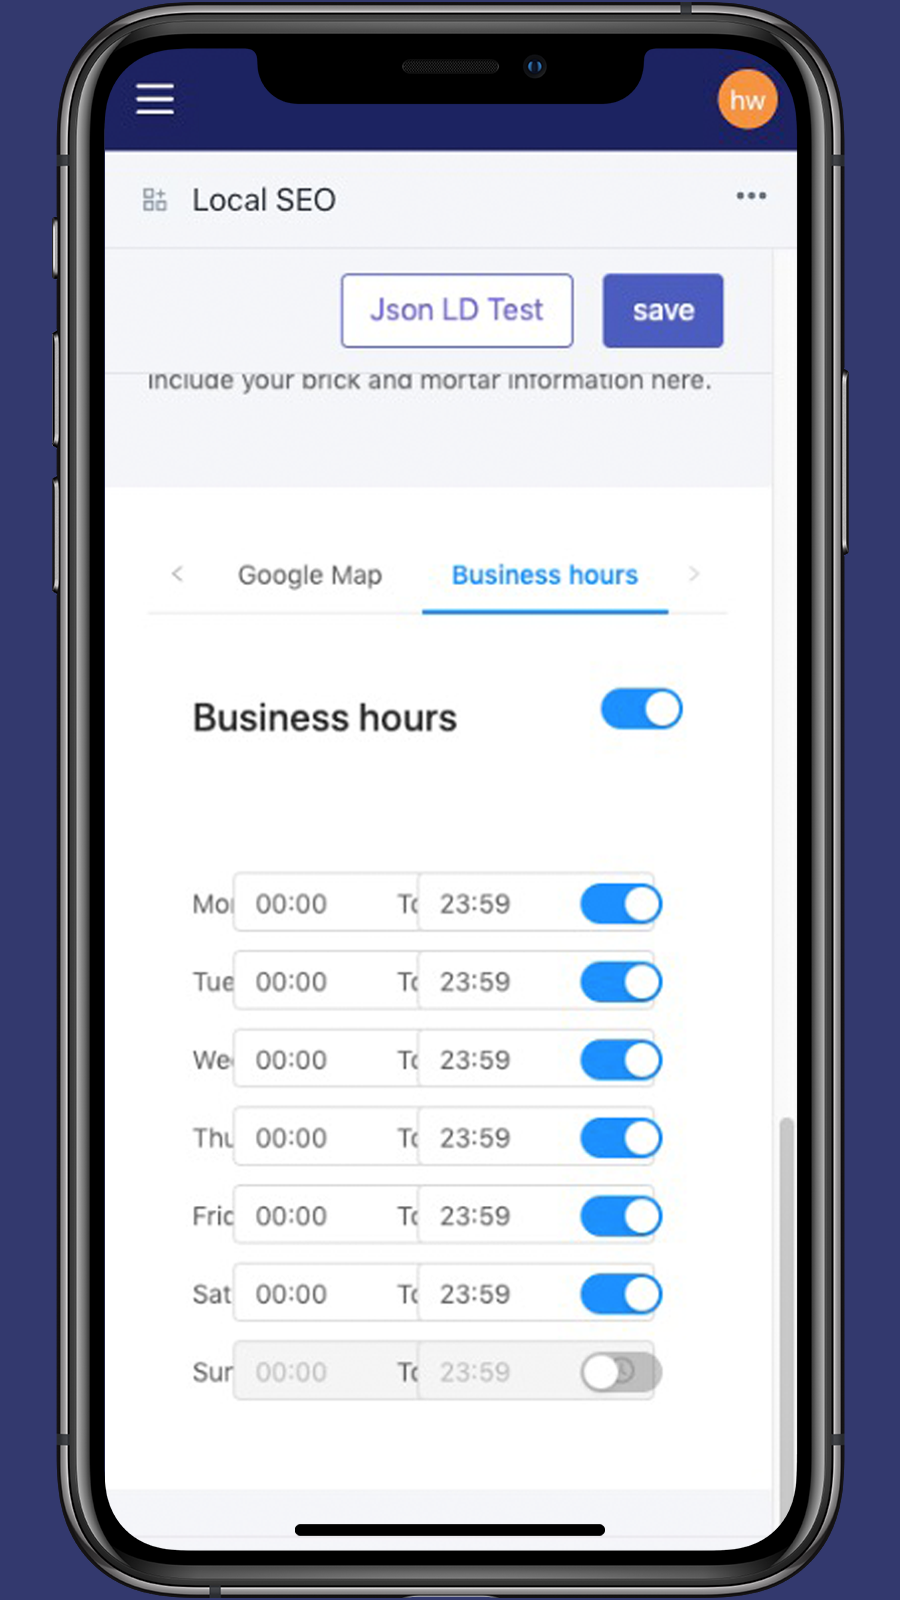 Business Hours_Local SEO